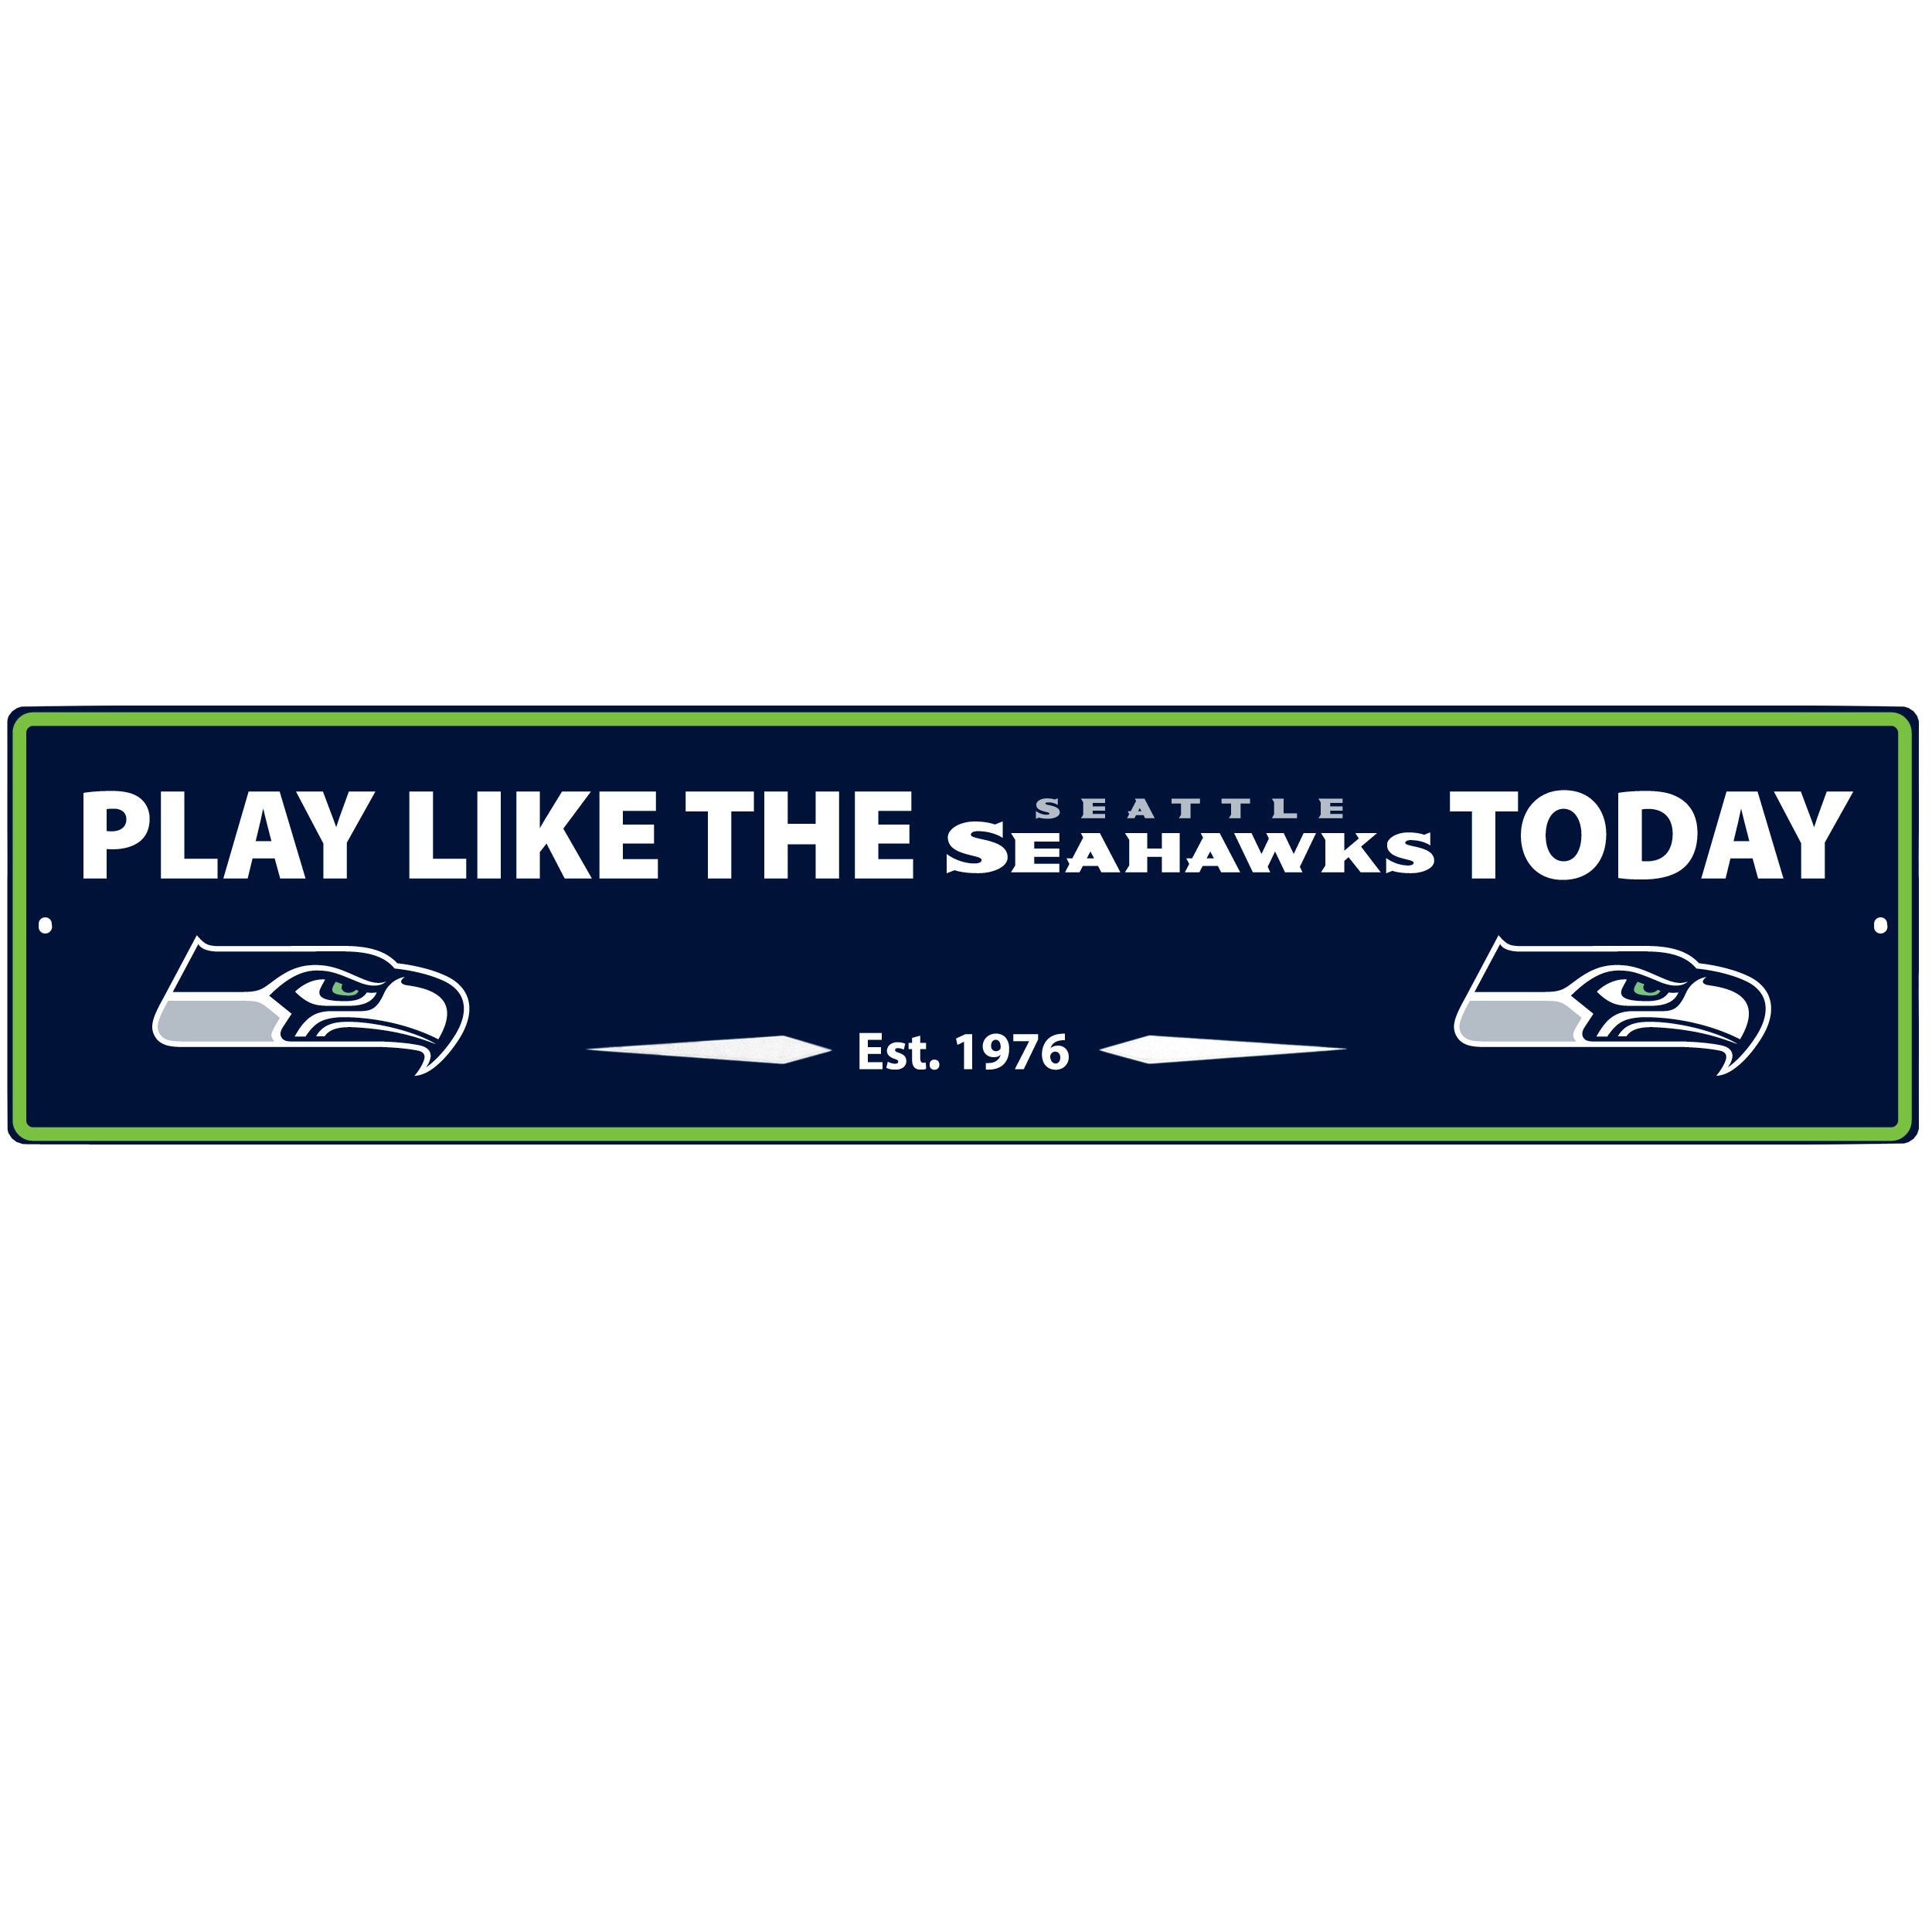 Seattle Seahawks Street Sign Wall Plaque - This motivational plaque is perfect for hanging over the doorway of your fan cave reminding you to play like your champion Seattle Seahawks! The sign is 20 inches wide and made of light-weight stamped aluminum. The bright team colors and classic design make this a must-have home décor accessory that would look great in any game room, living room or office!